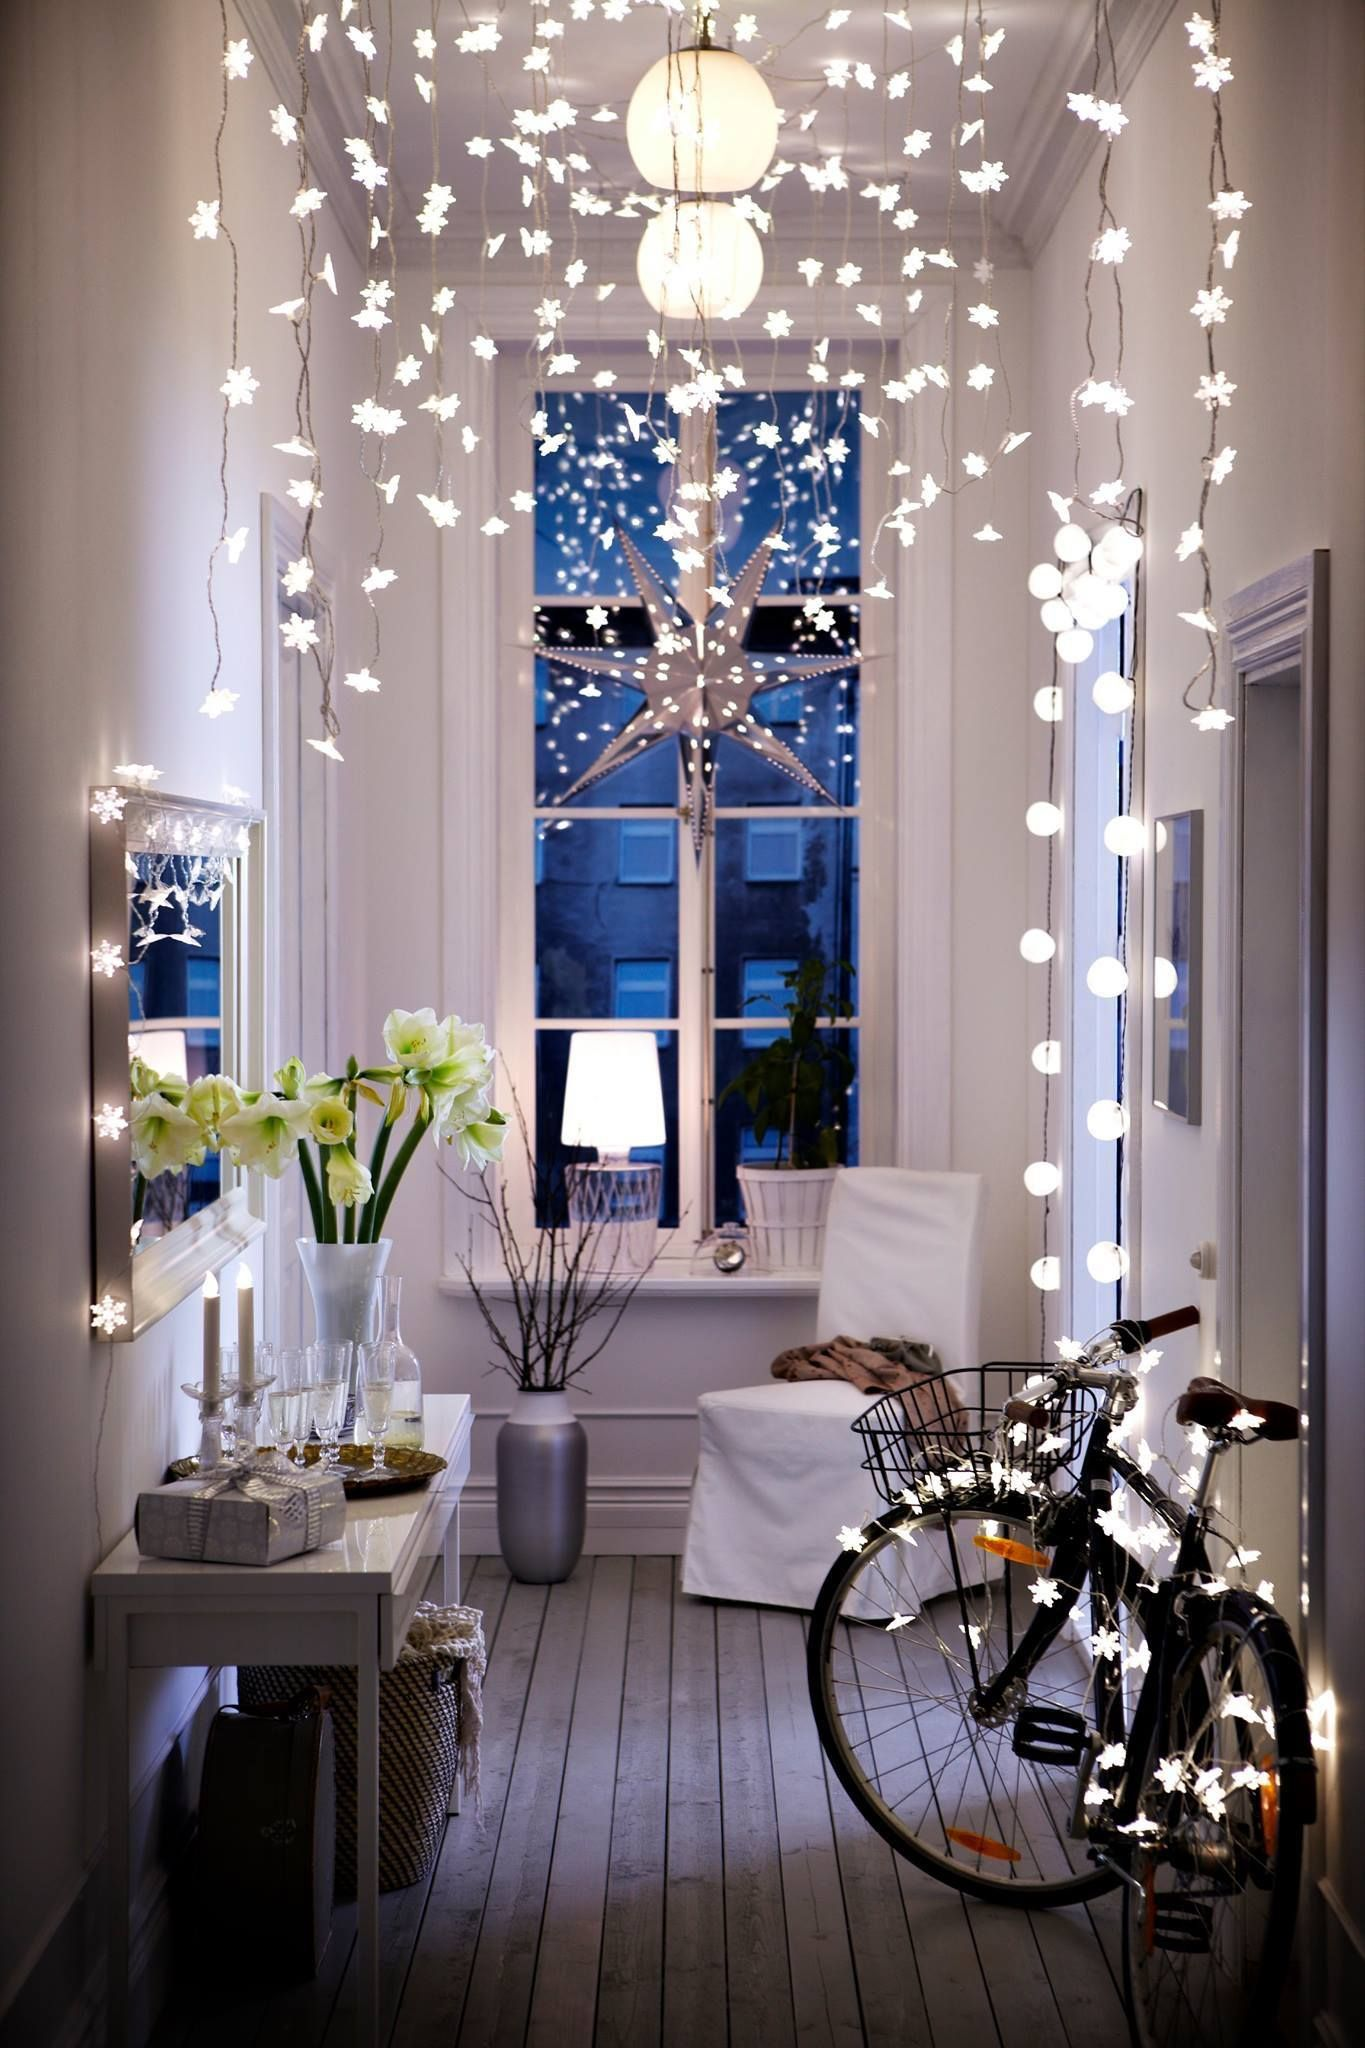 19 brilliant ways to decorate with string lights all year round rh pinterest com